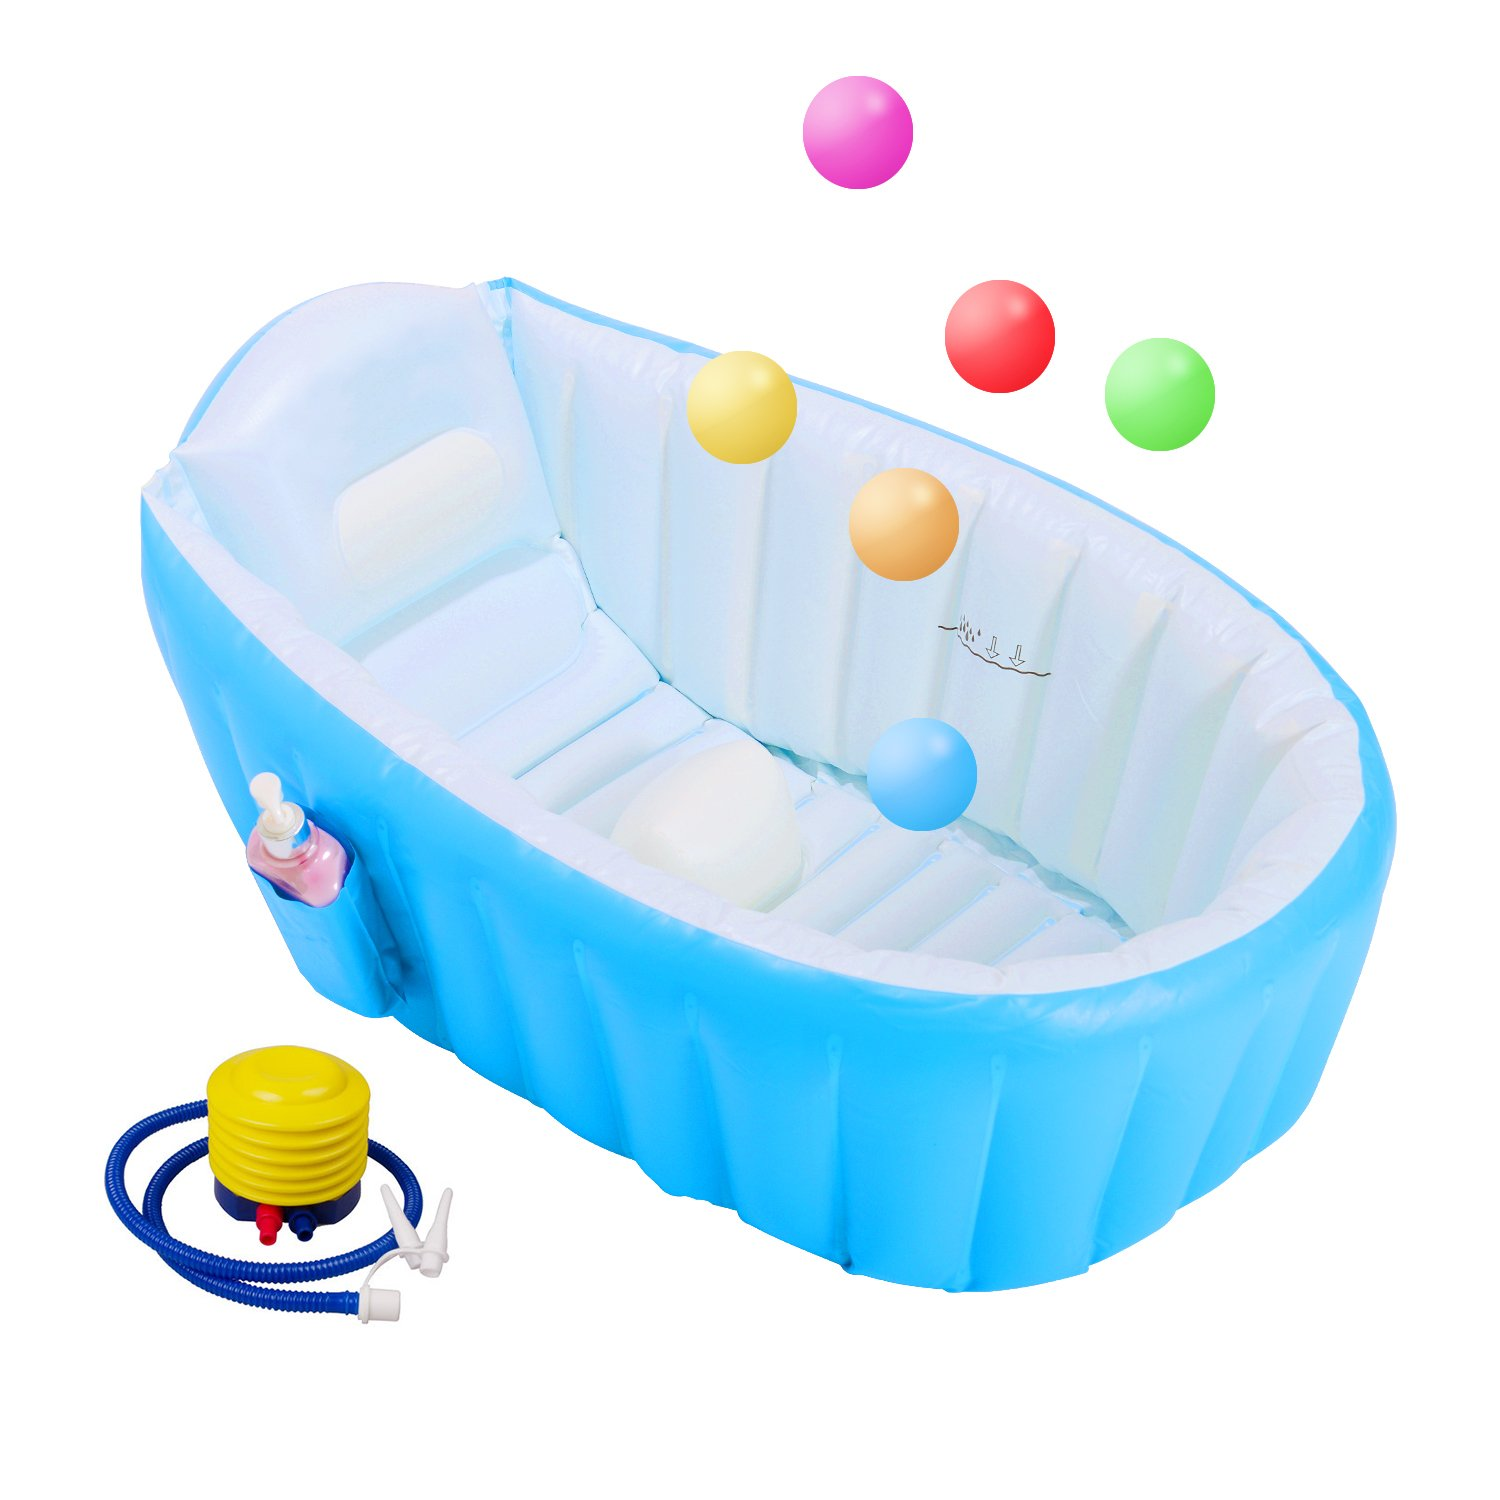 Amazon.com: Biubee Baby Inflatable Bathtub - Air Bath Basin with ...